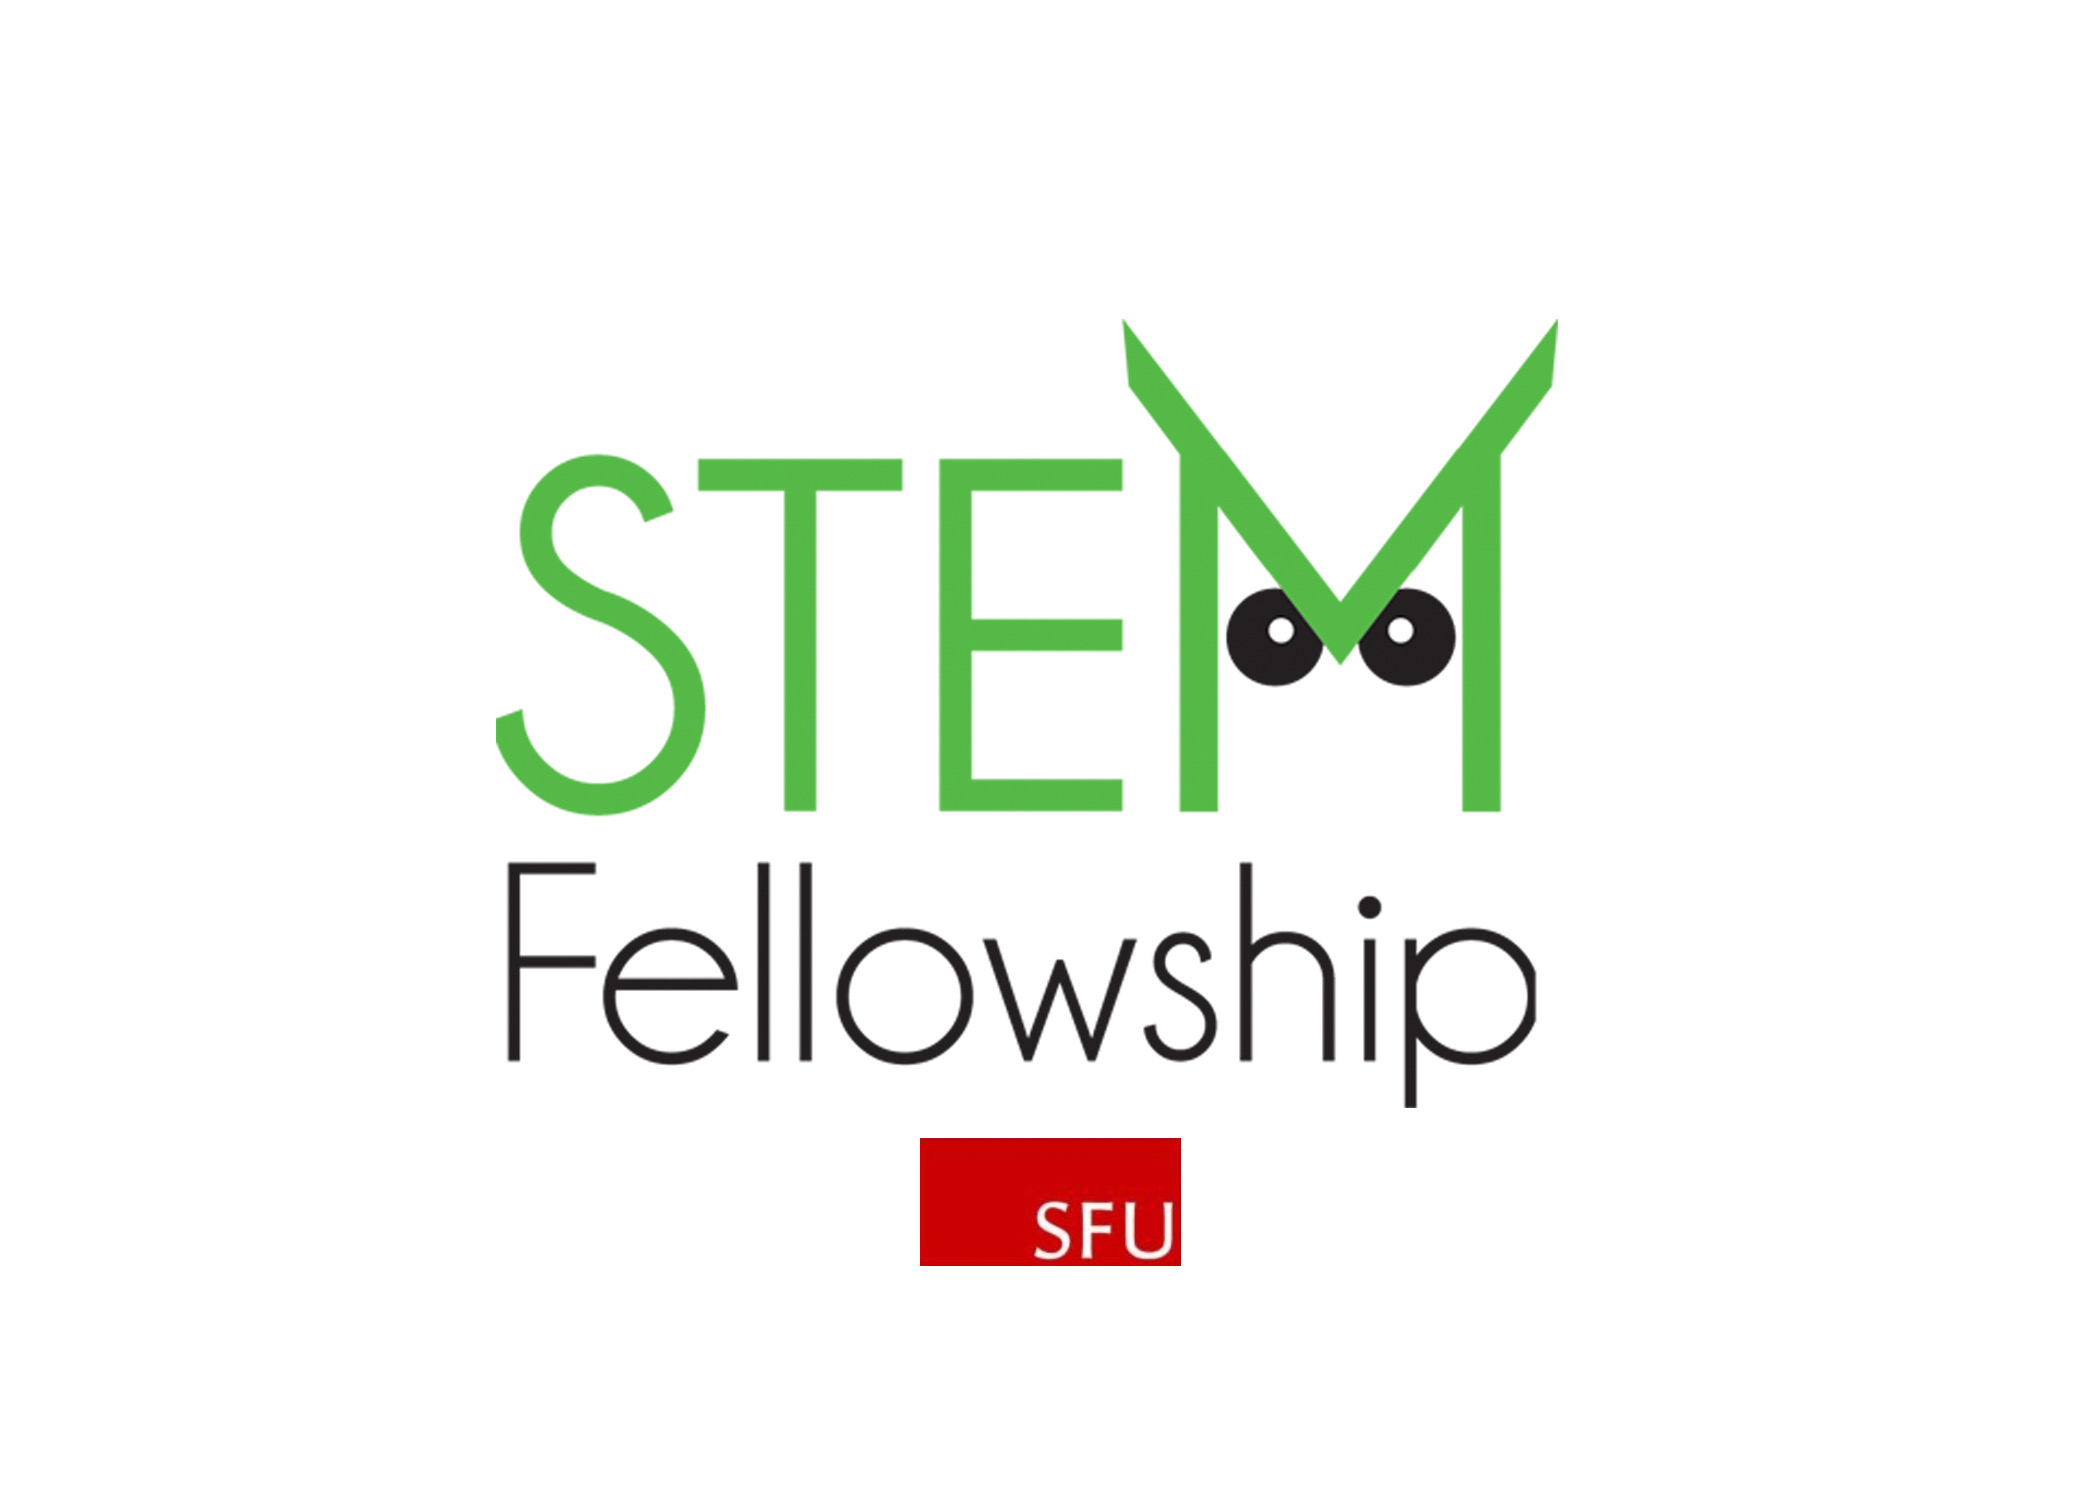 STEM Fellowship SFU